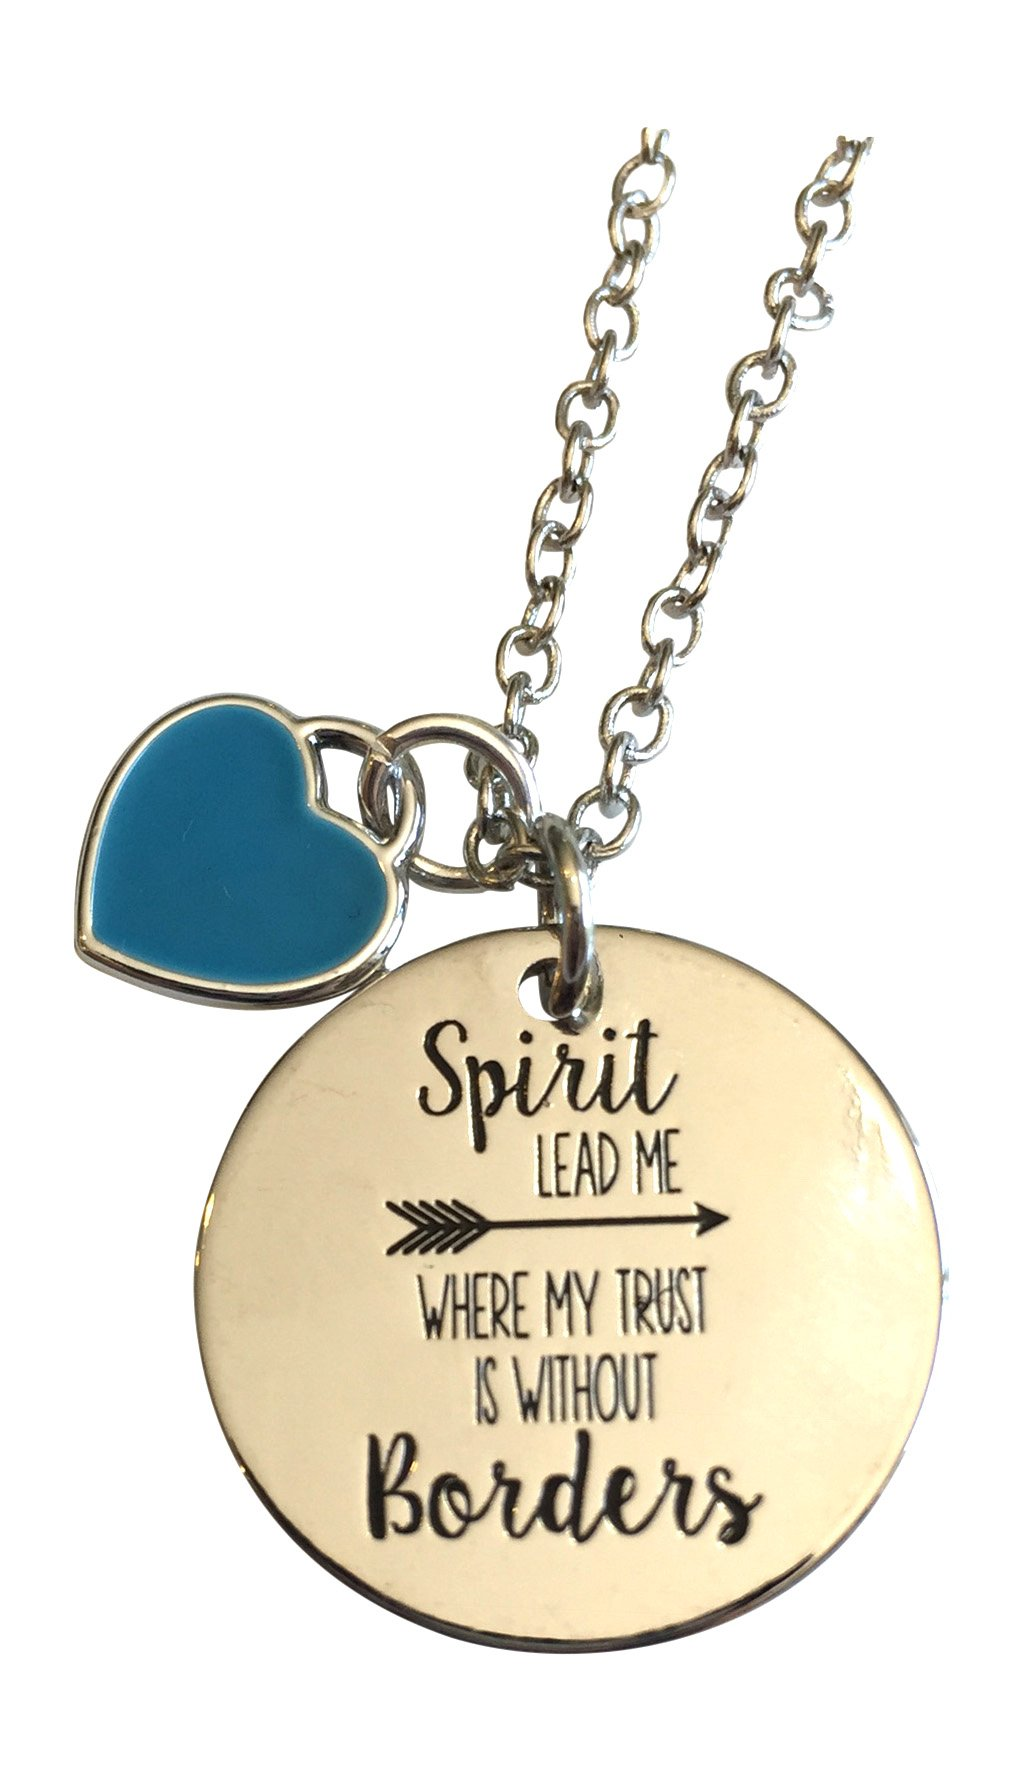 Spirit Lead Me Where My Trust Is Without Borders ~ Silver Plated Necklace with 22 inch Link Chain in Gift Linen Bag ~ Popular Christian Jewelry 2018